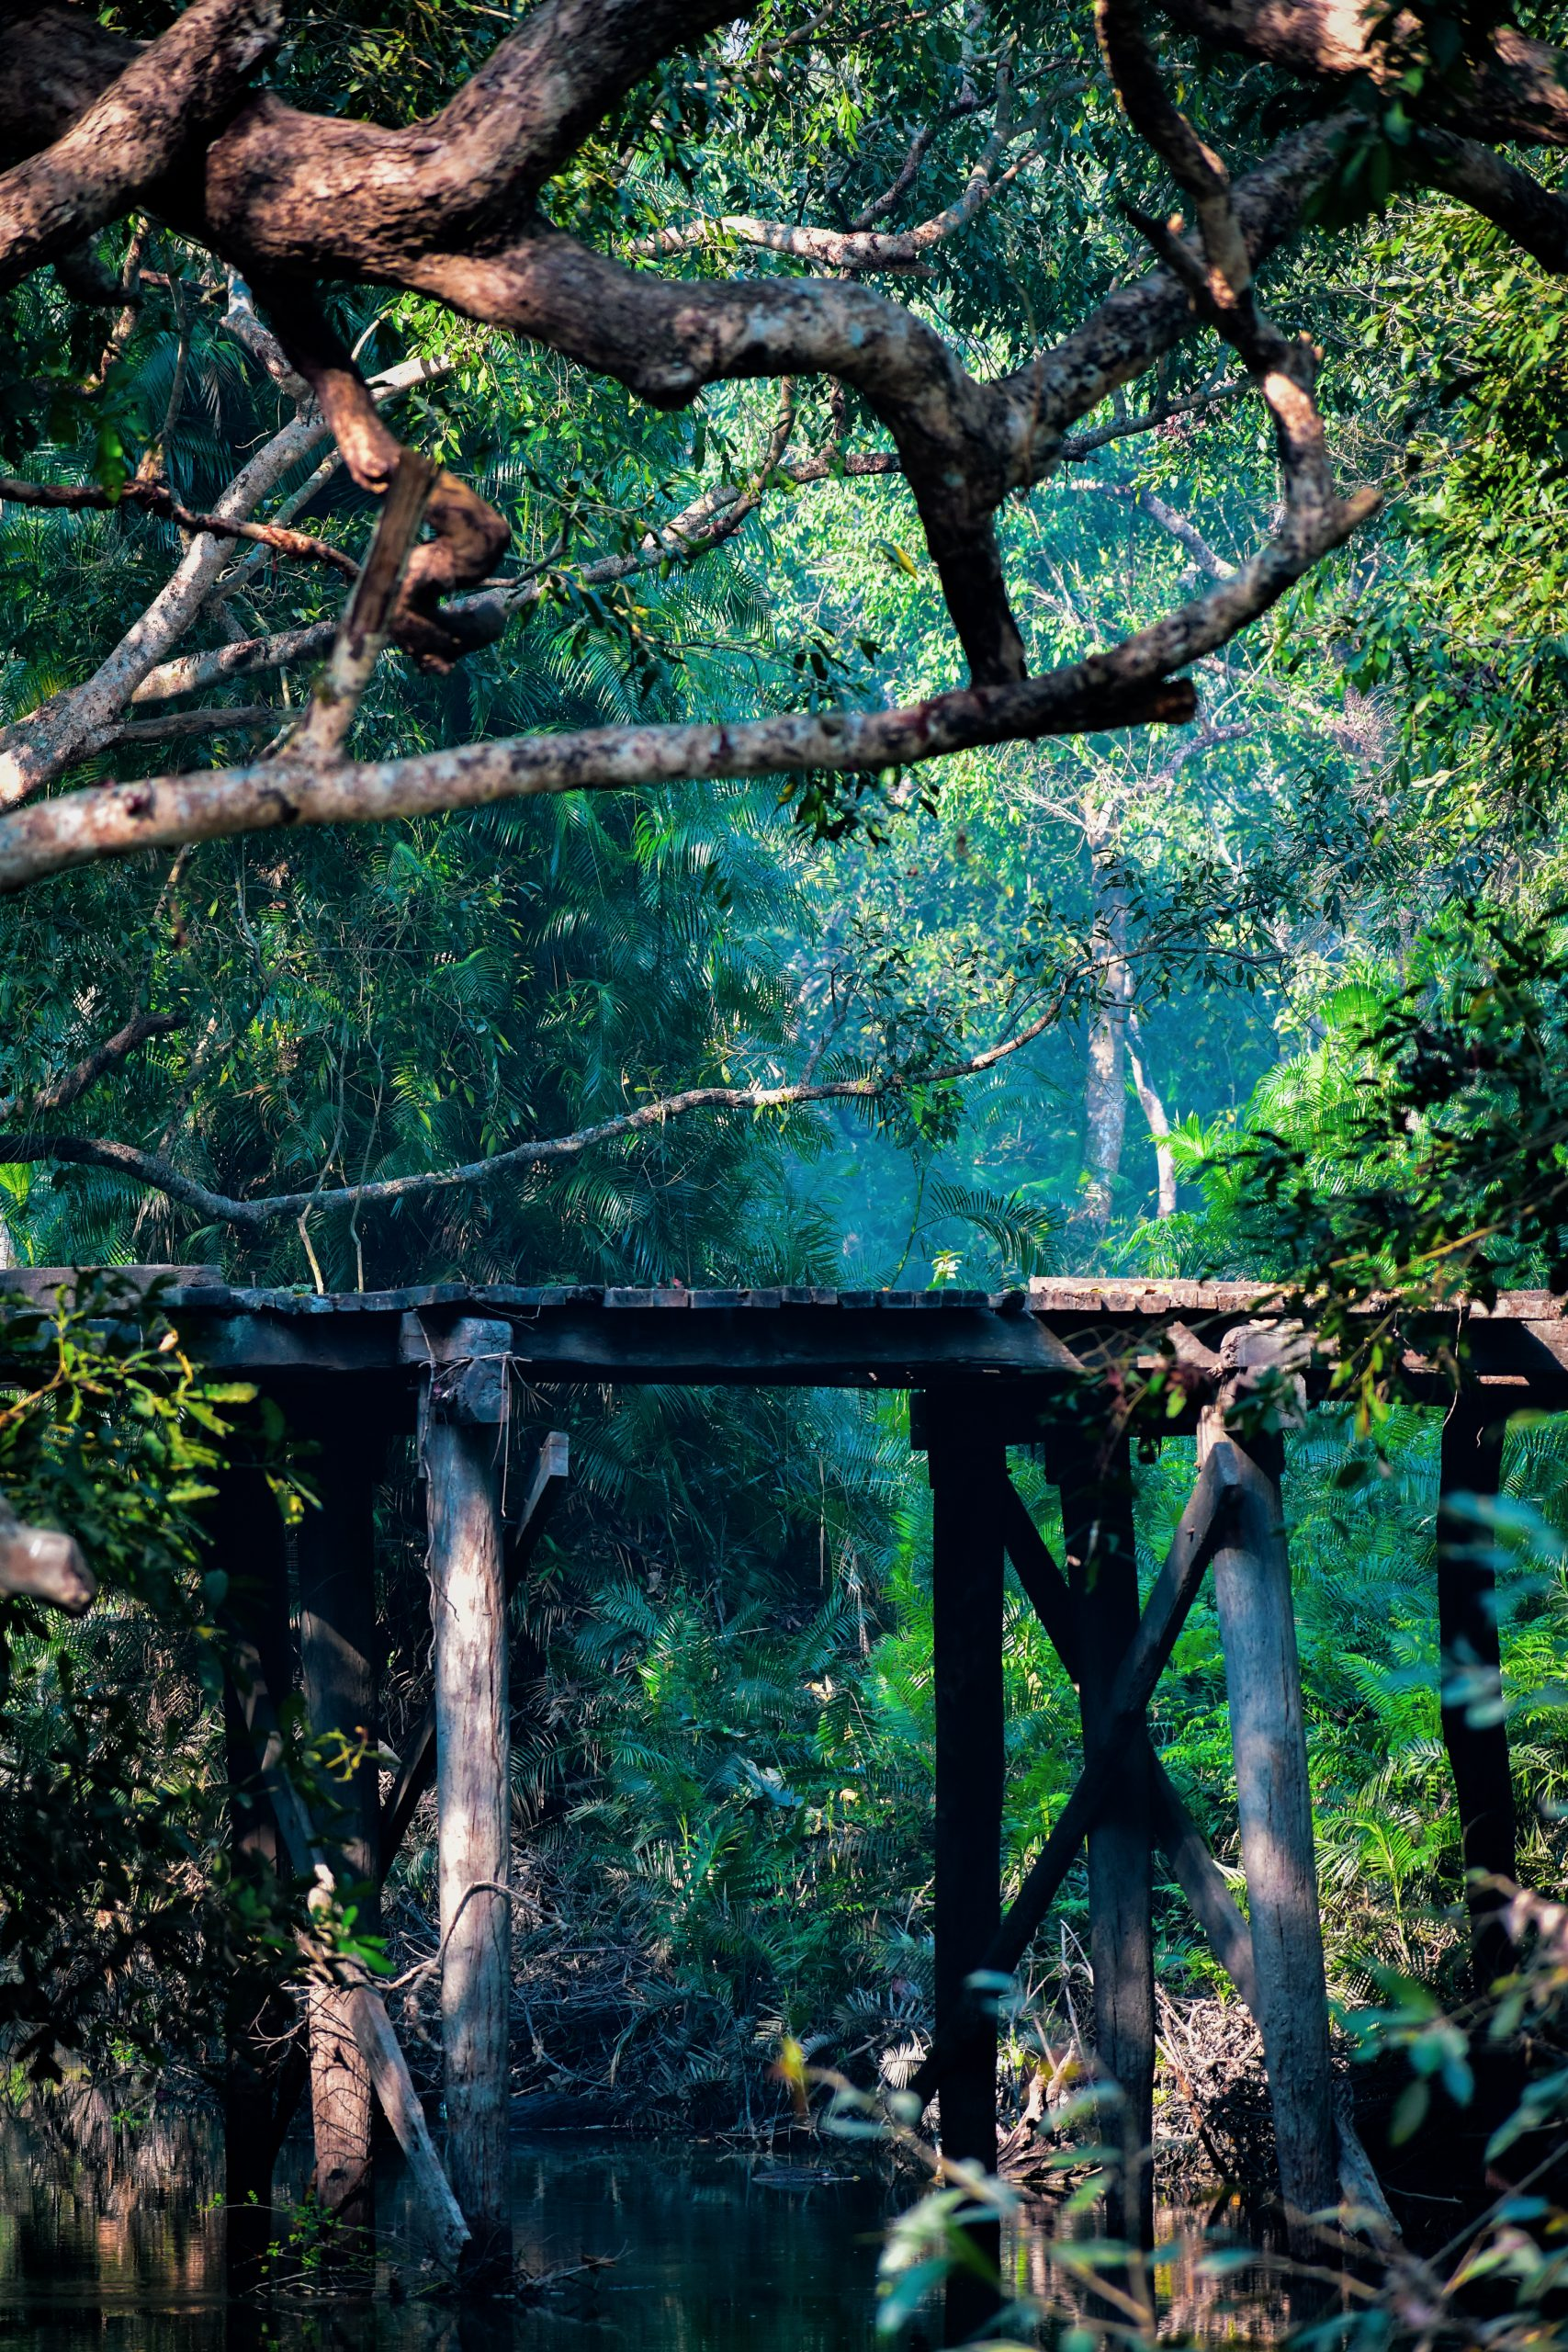 An old wooden bridge in a jungle